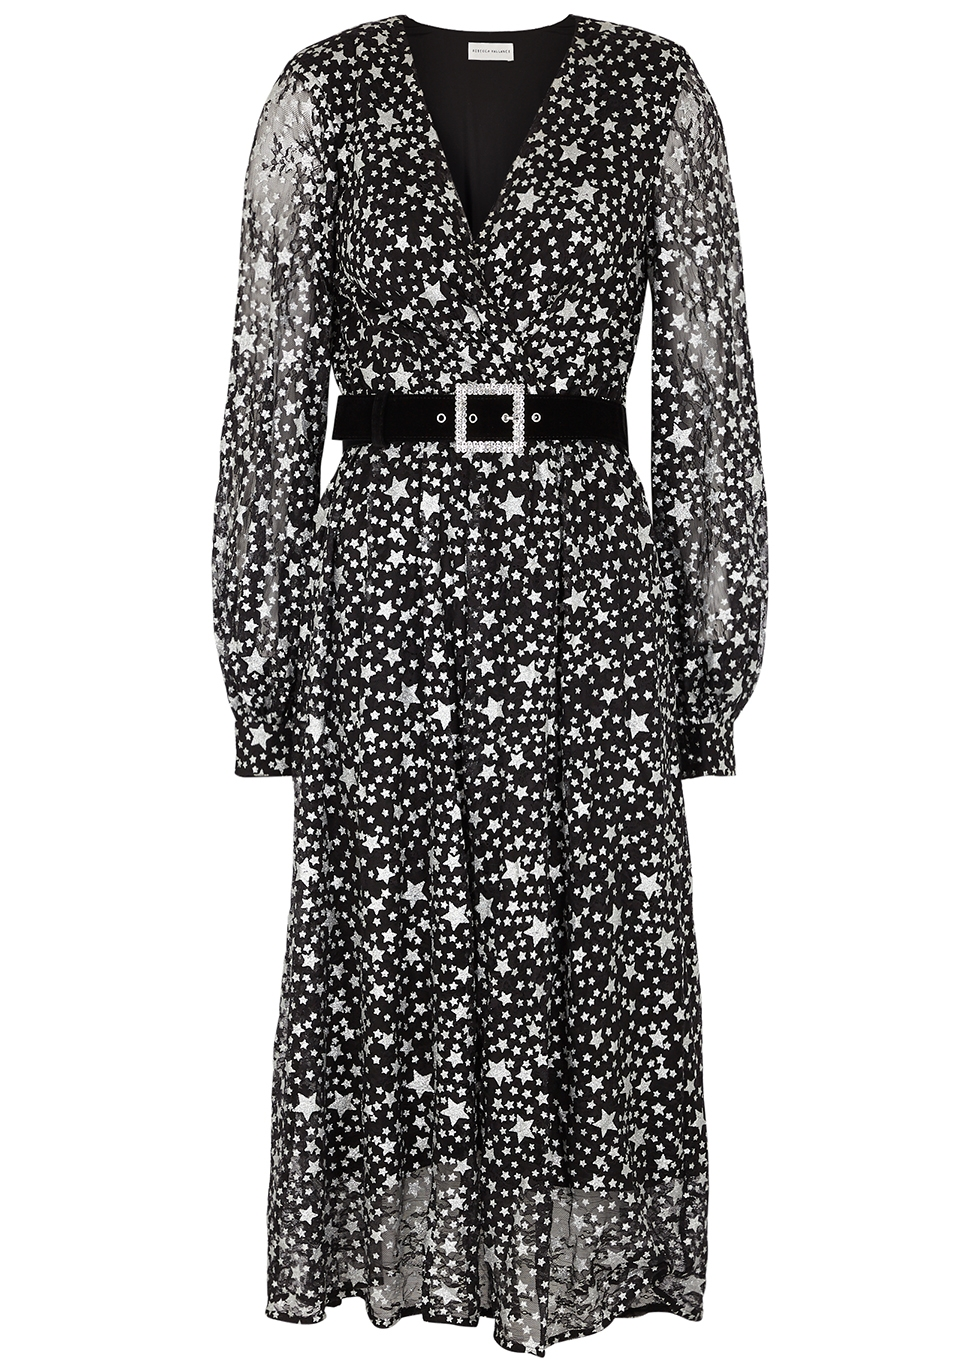 Notte star-print belted lace midi dress